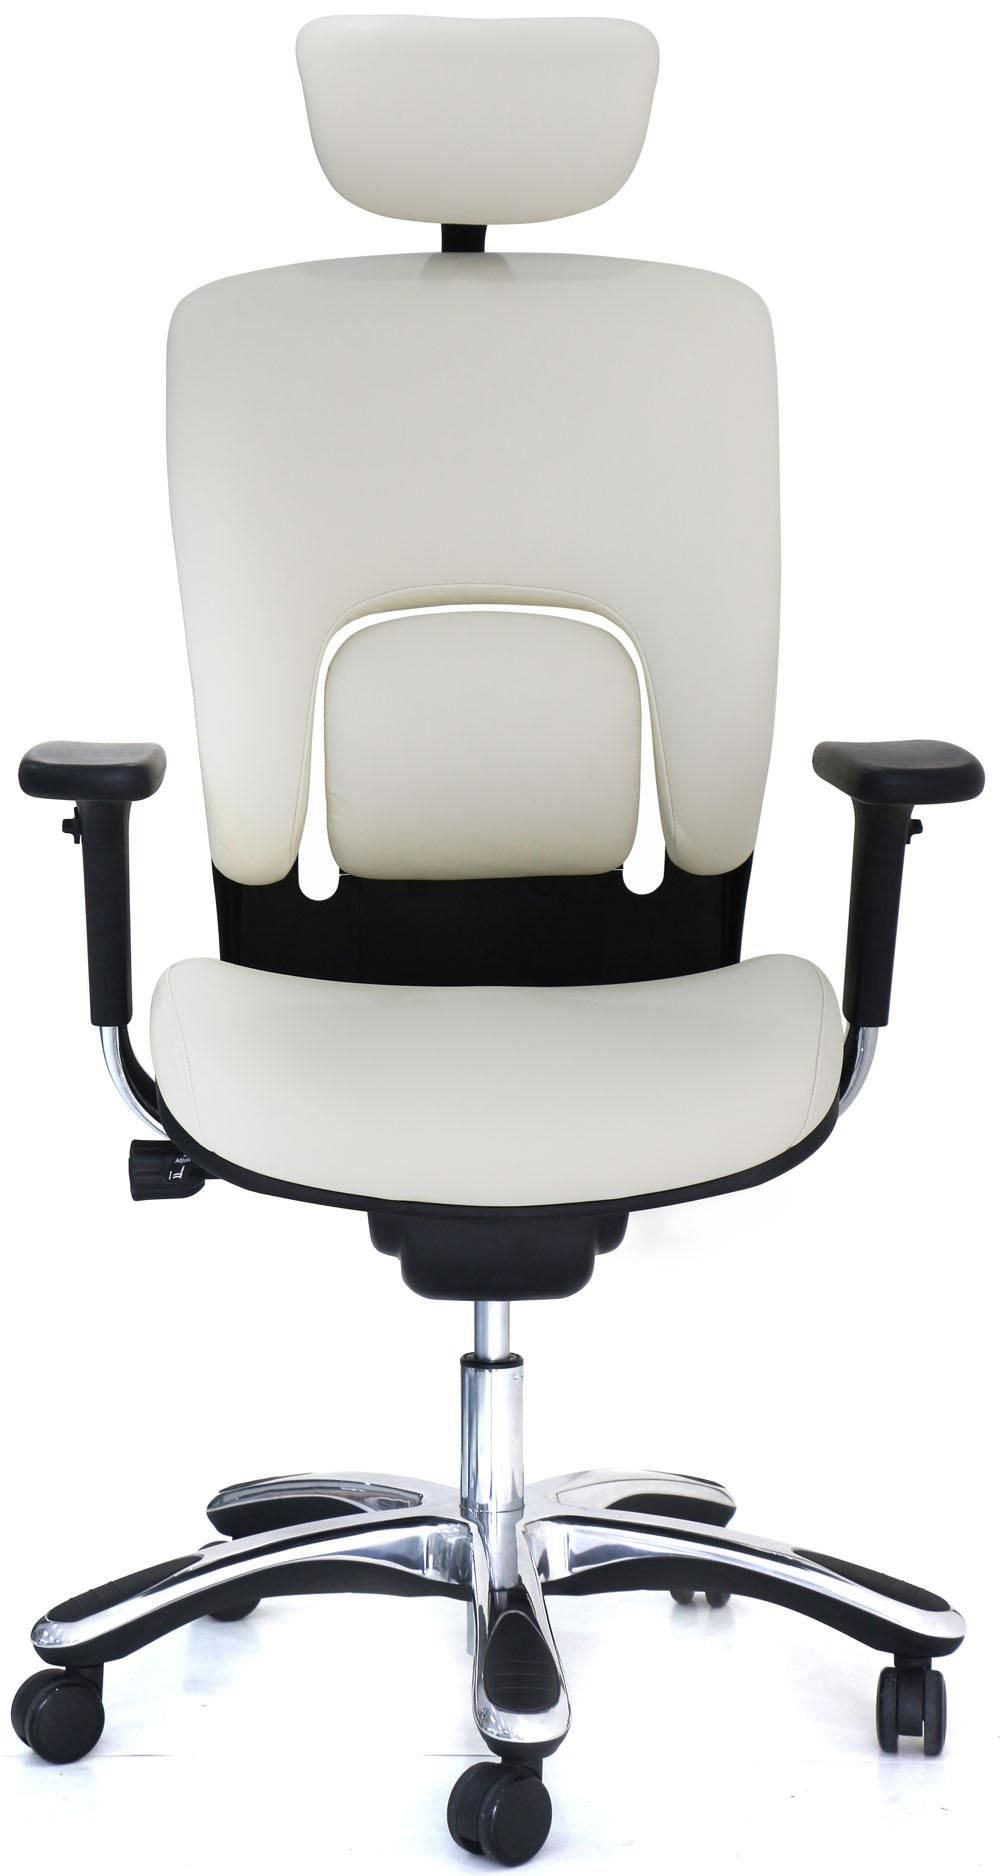 Best Ergonomic Office Chair White Ergolux Genuine Leather High Back Executive Office Chair